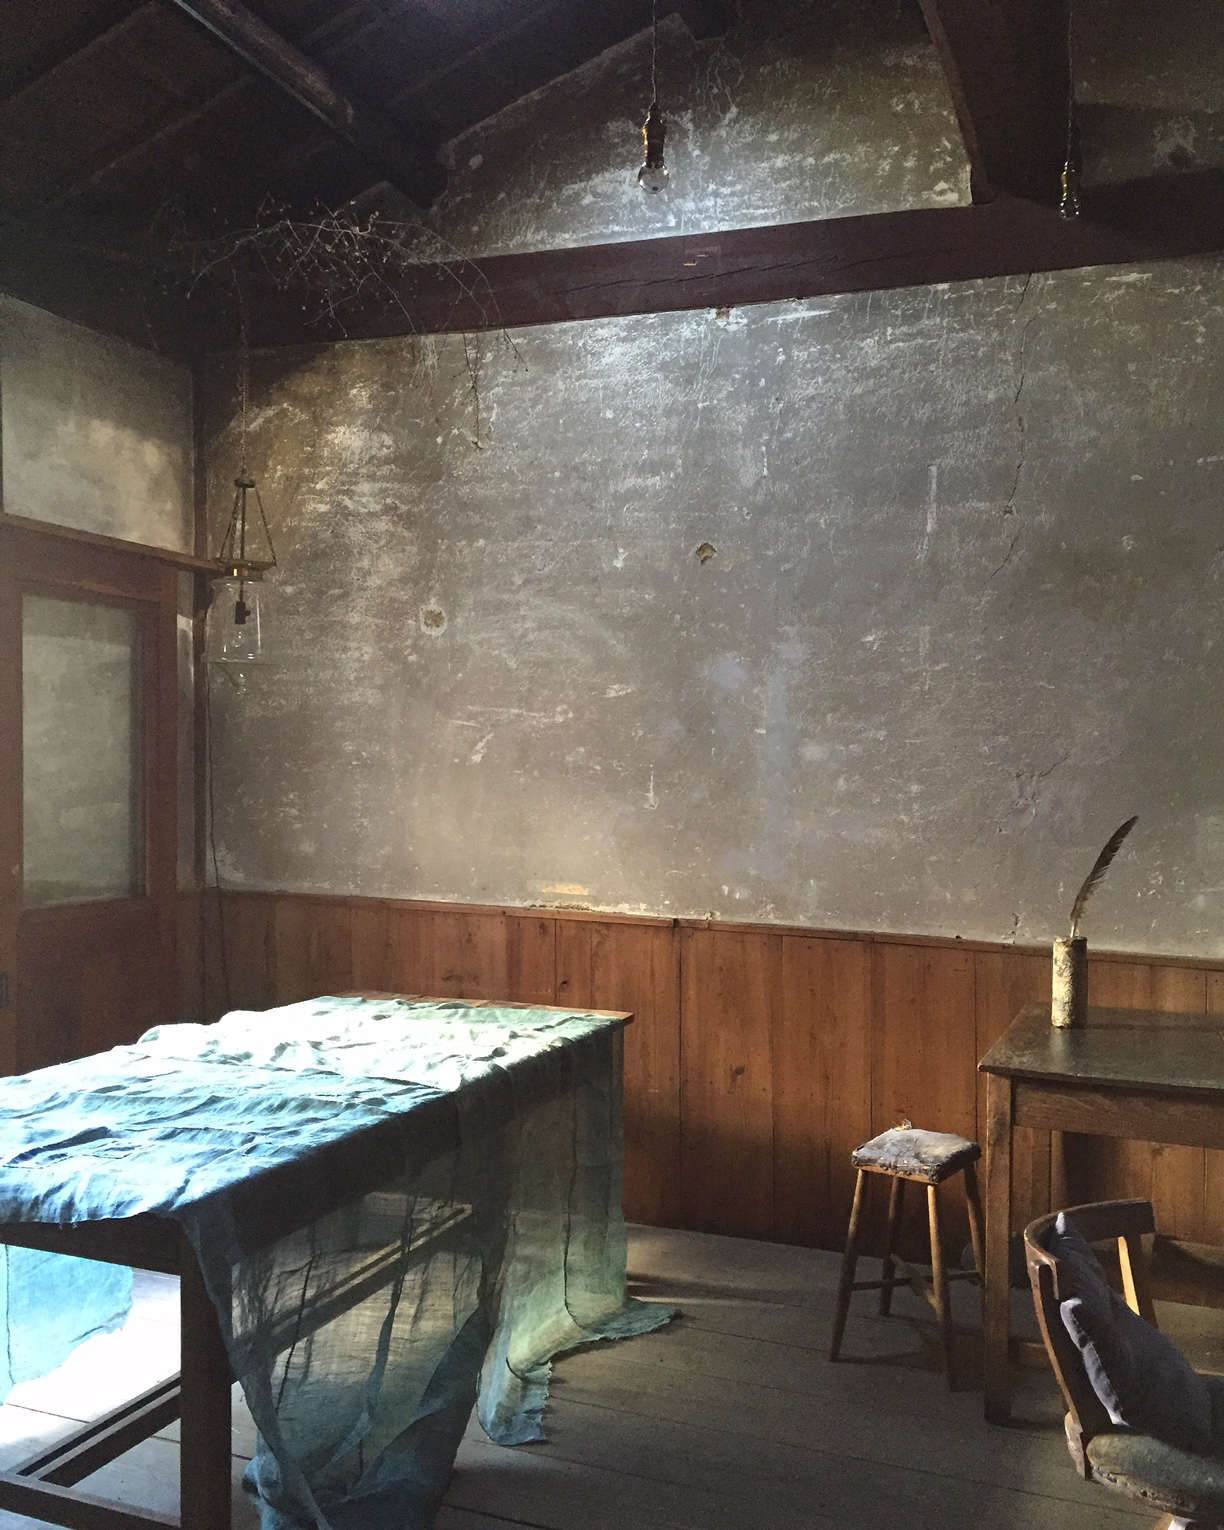 Japanese antique indigo linen at Stardust boutique-cafe in Kyoto